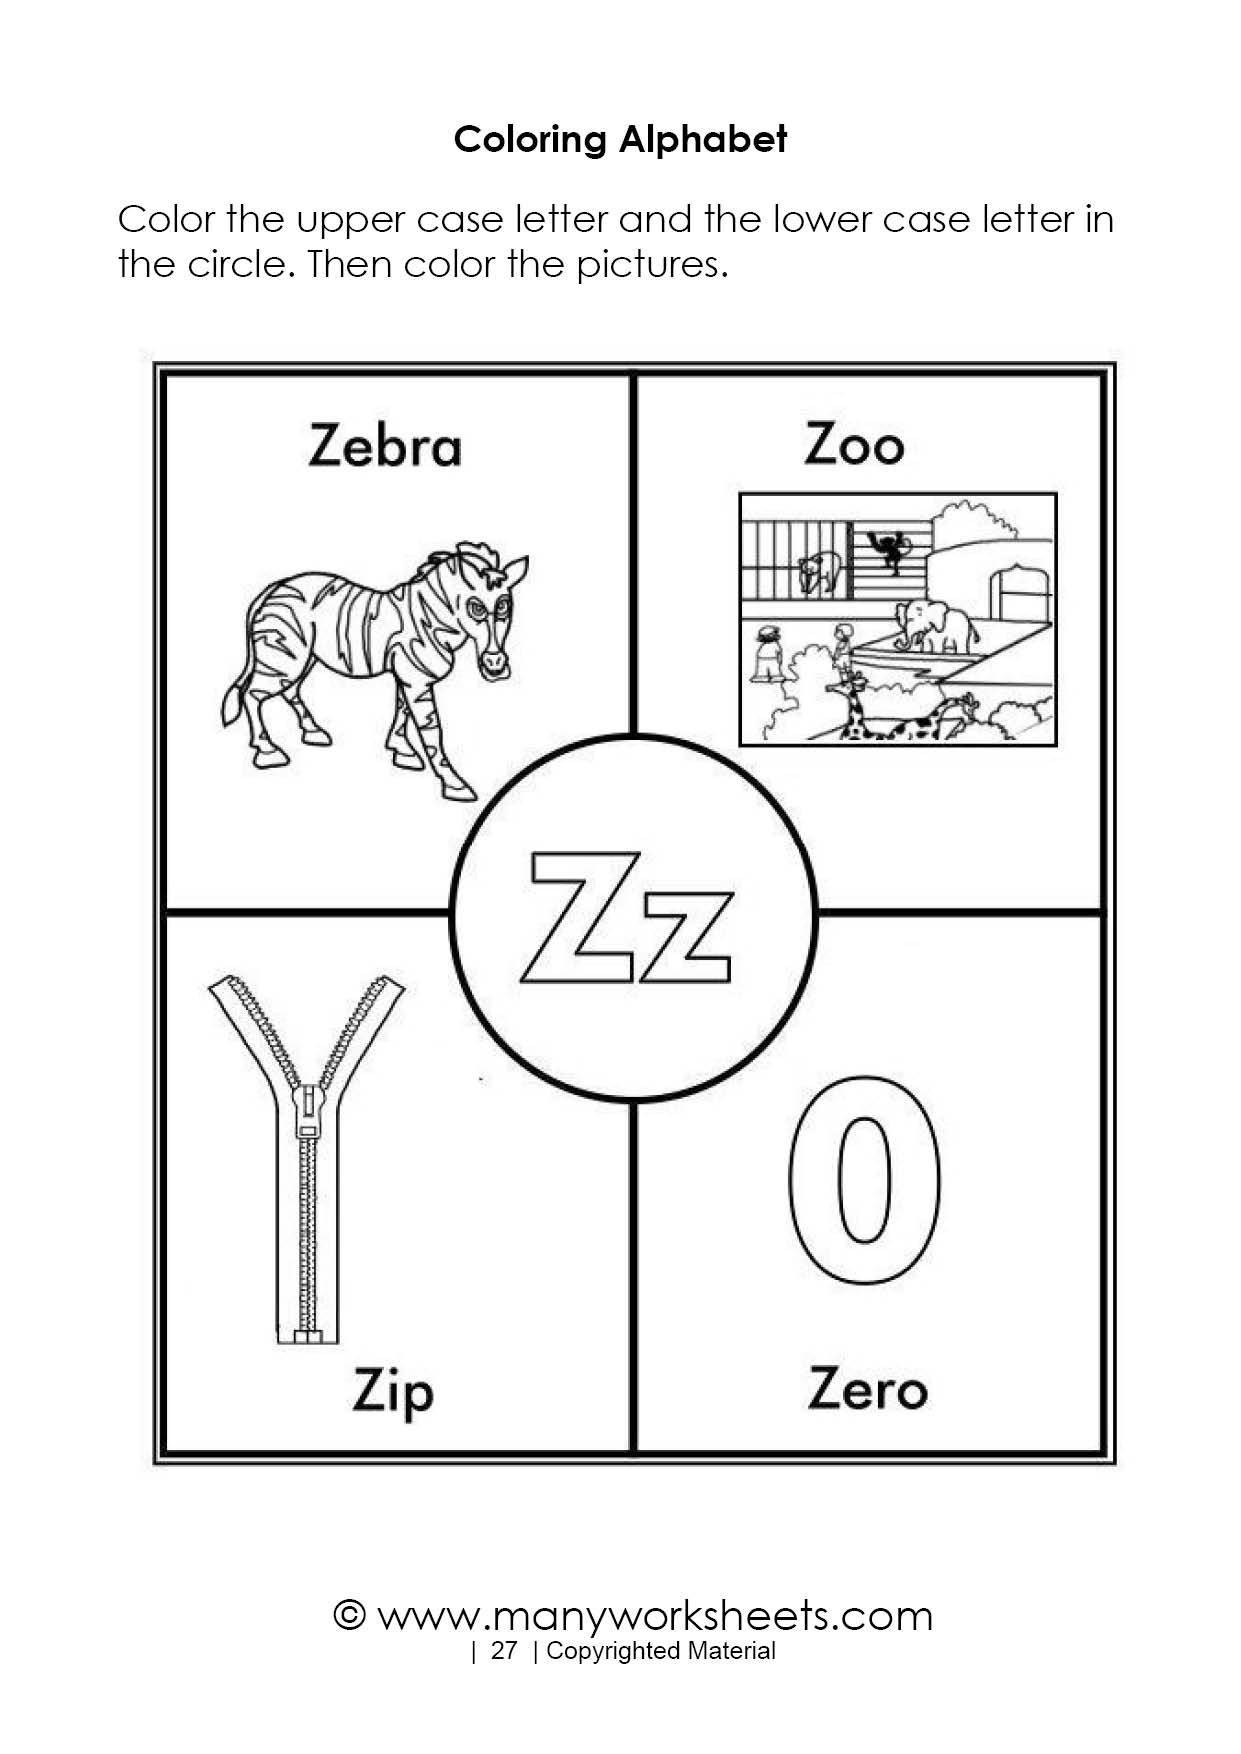 Letter Z Worksheets for Preschoolers Alphabet Colorings Letter Z Printable Image Ideas Free